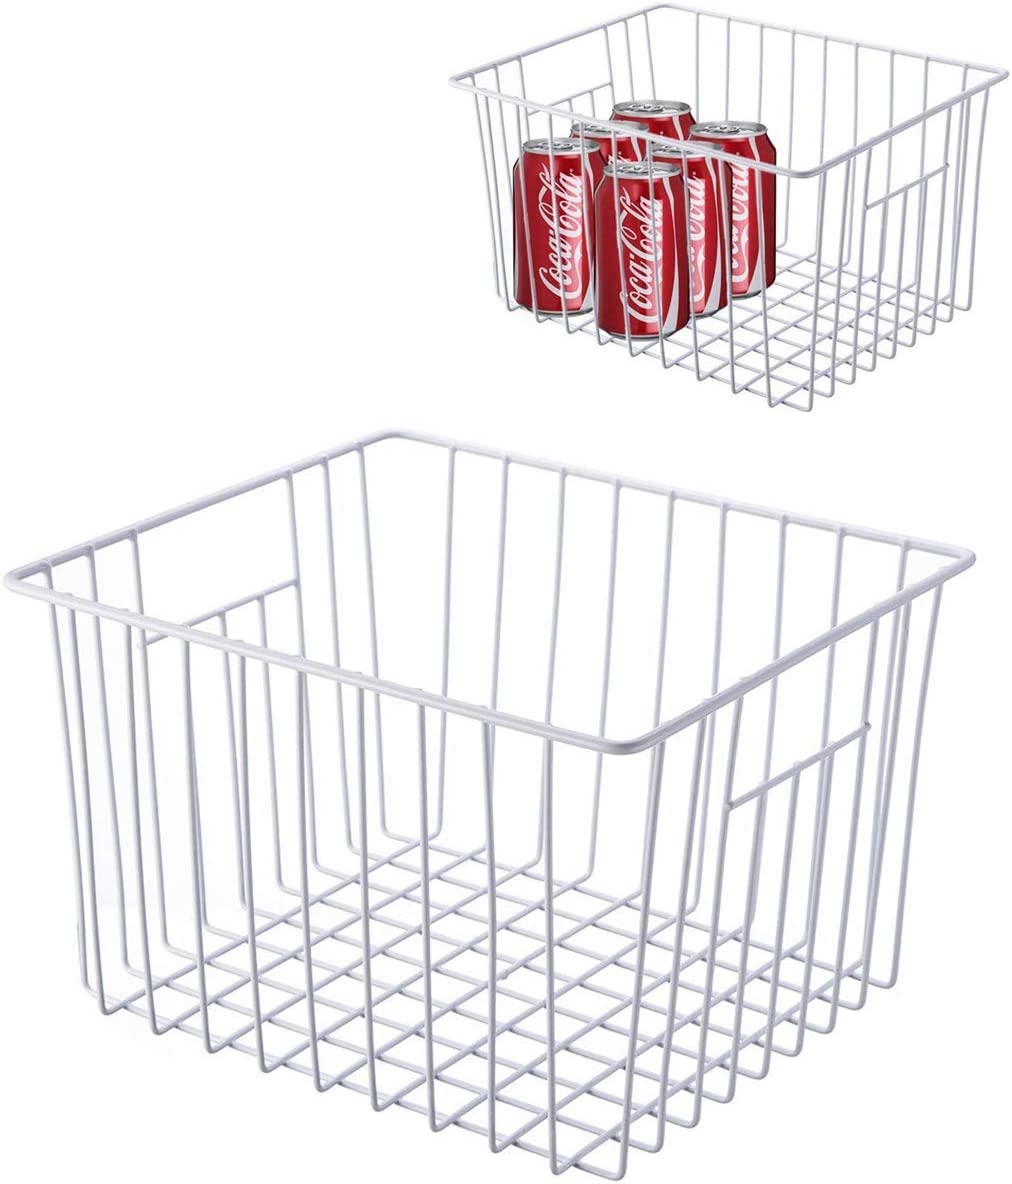 WenZBros Freezer Storage Organizer Basket, Deep Wire Food Organizers Basket, Household Bin Basket with Handles for Kitchen Cabinets, Pantry,Freezer, Bathroom, Closets, Set of 2